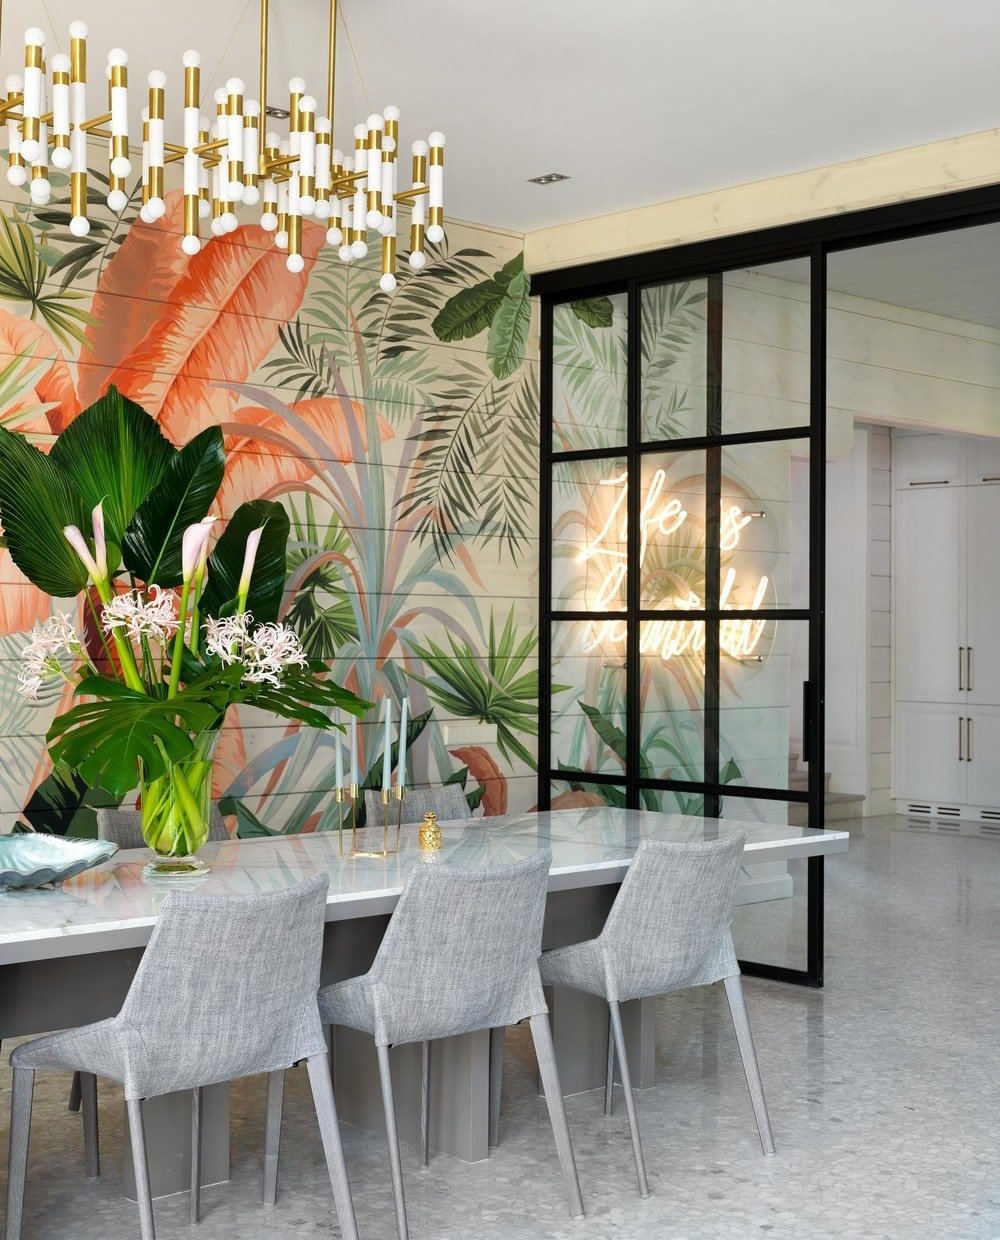 On the side of the wall mural is a glass wall that separates the dining area from the foyer. Here you can see the beautiful neon sign wall art on the white wall just beyond the glass wall.